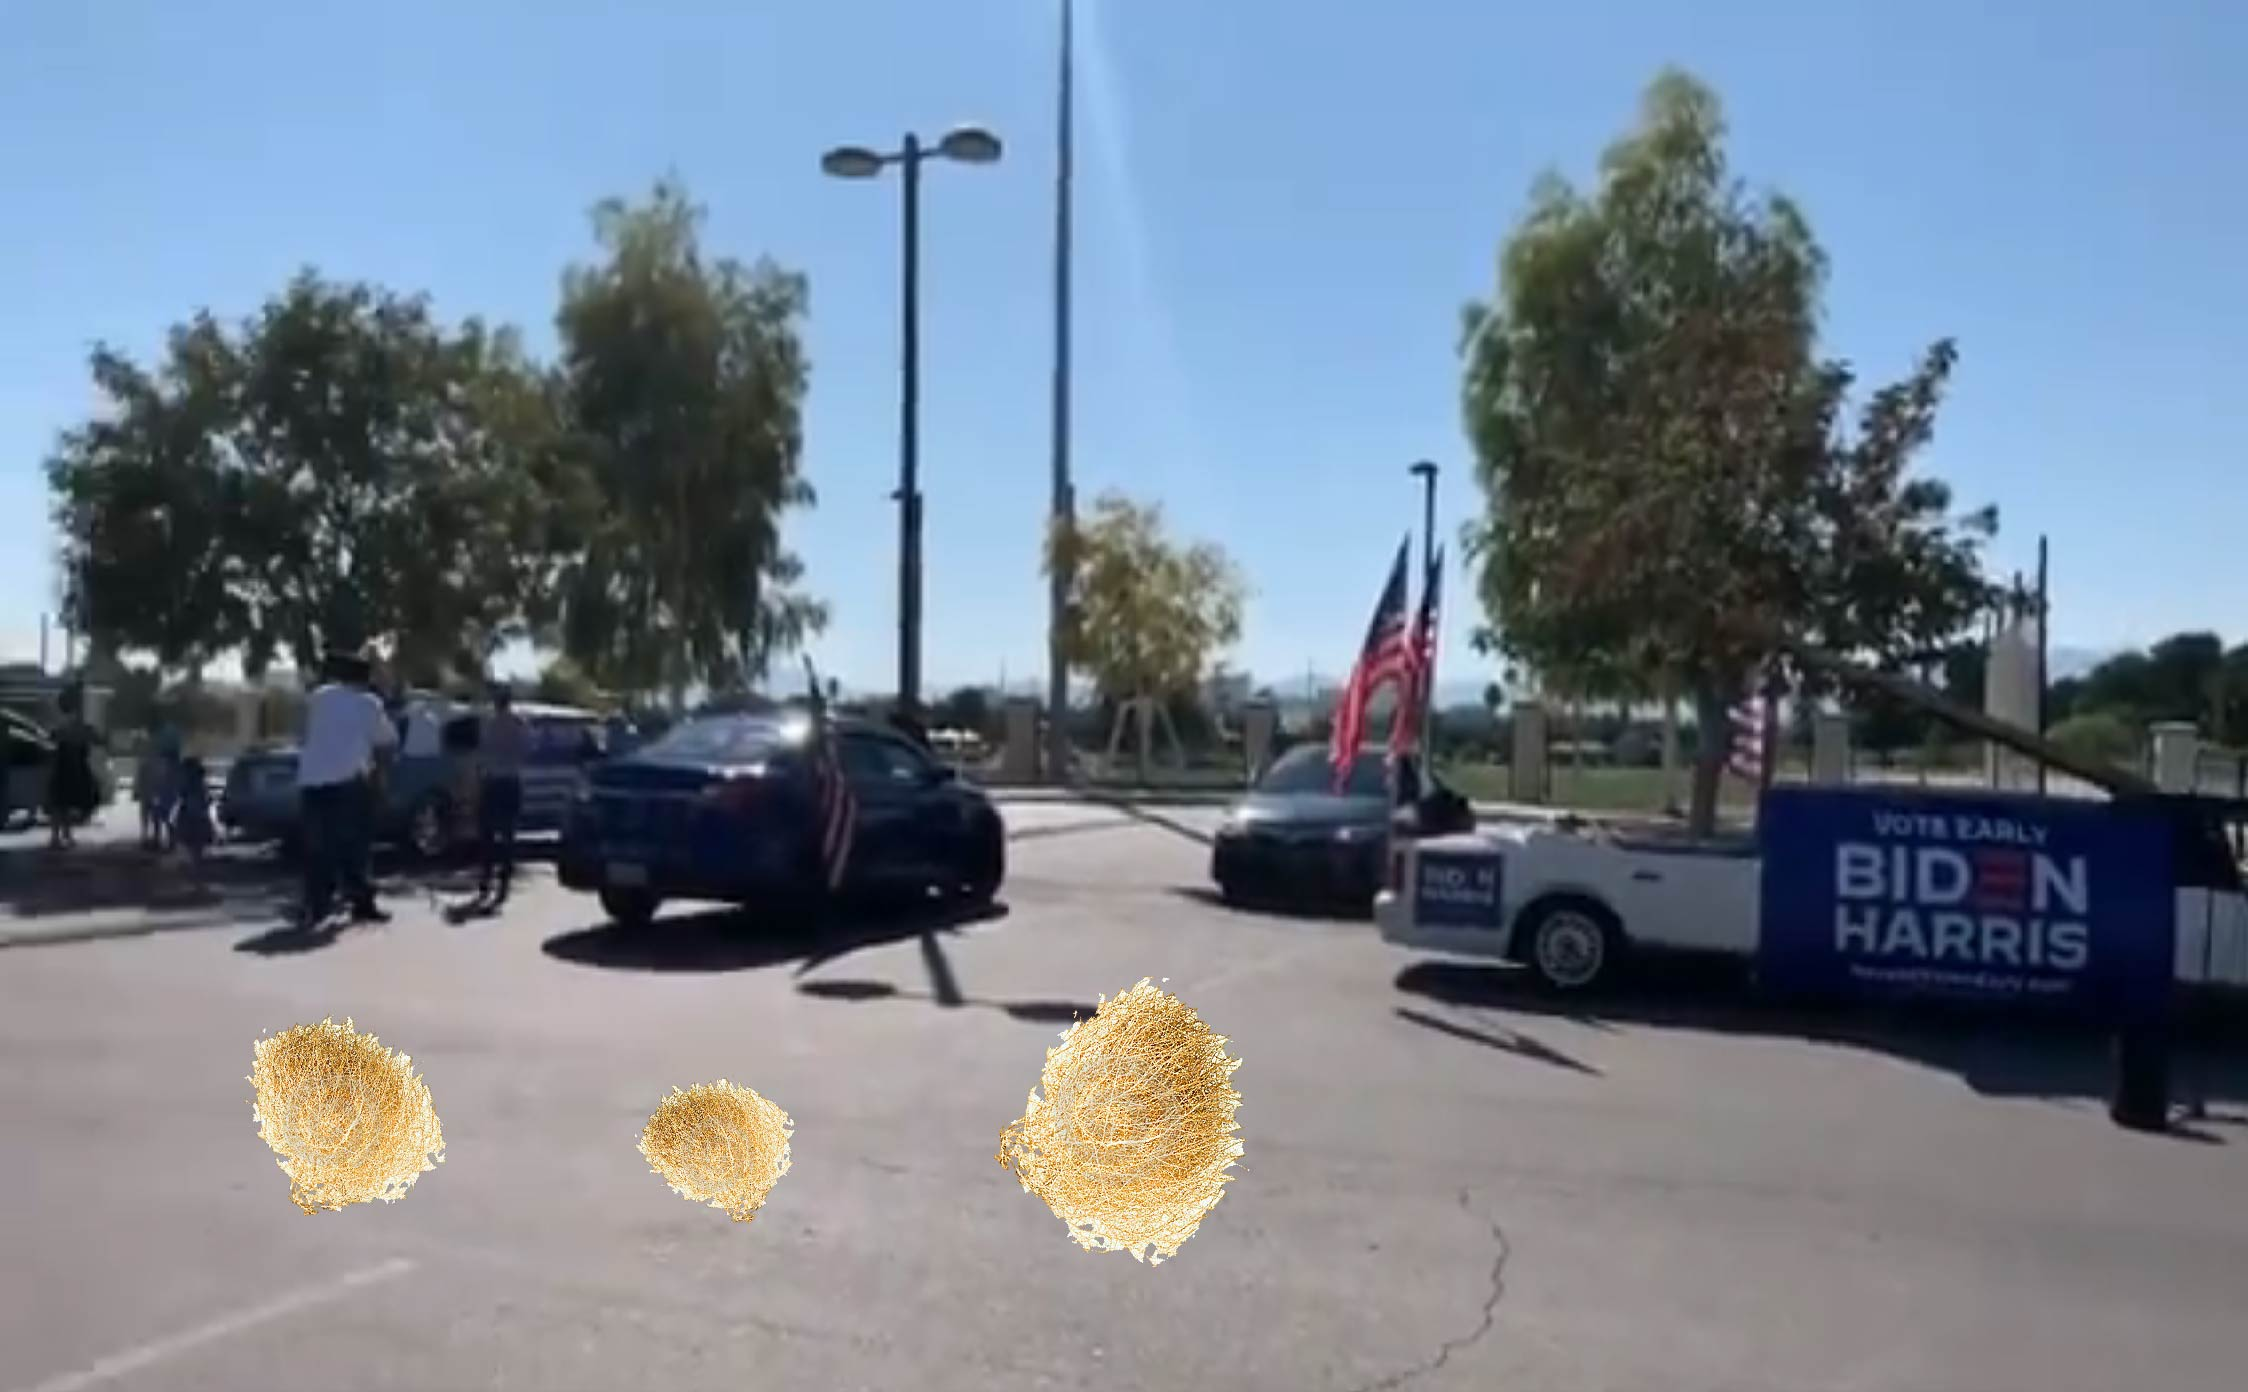 [WATCH] This 'Latino's For Biden' Car Parade in Vegas is the Saddest Thing You'll Ever See